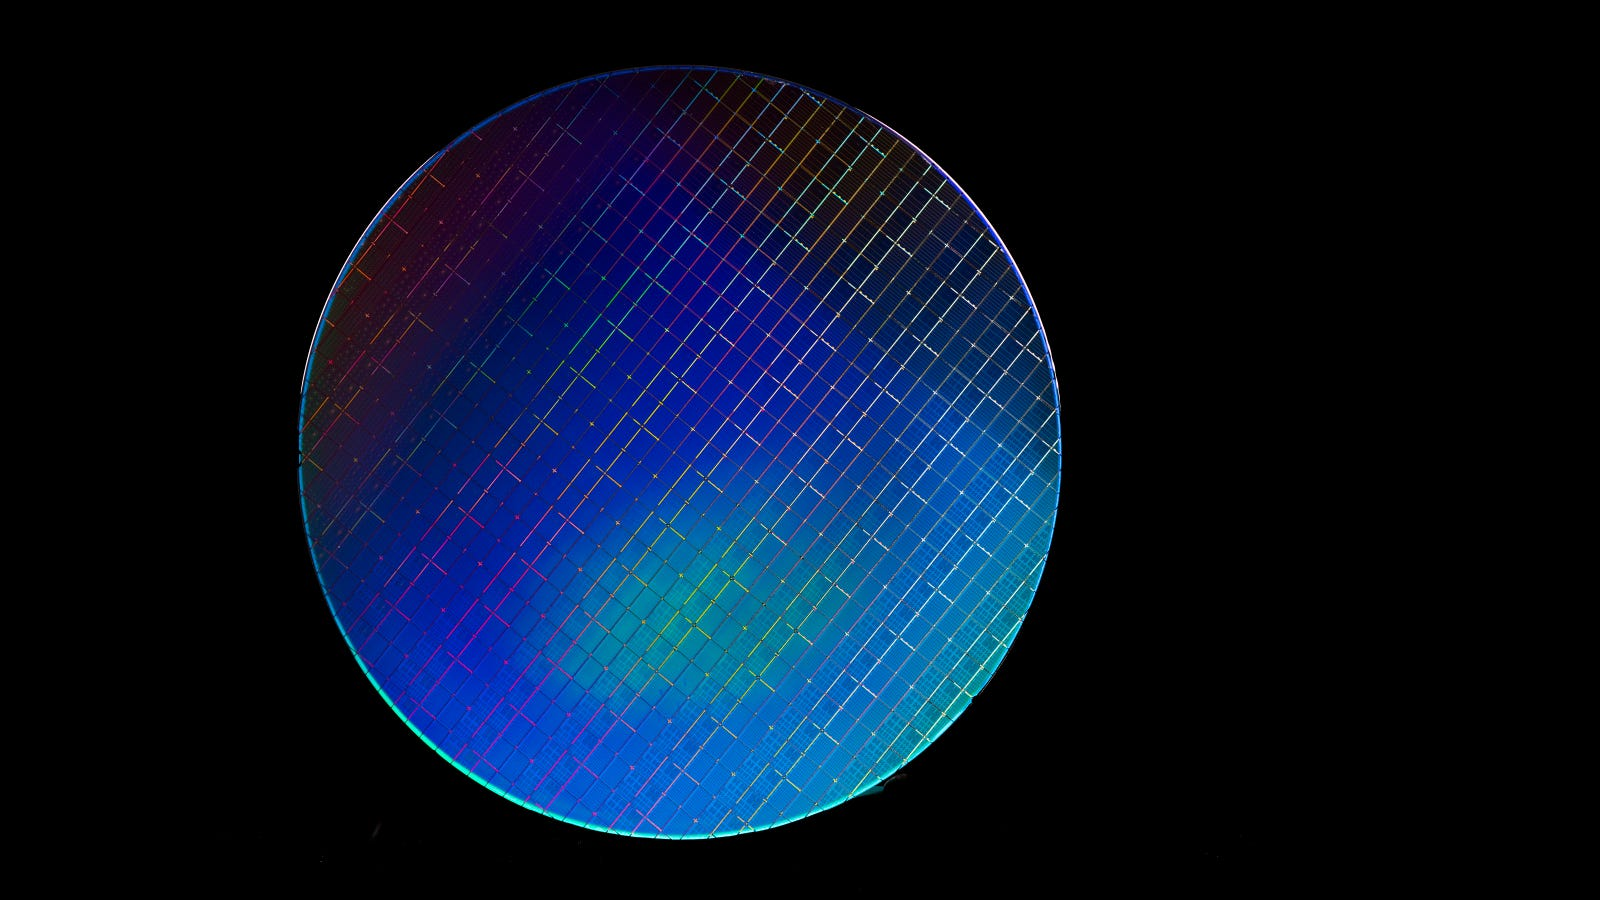 New Silicon Chip-Based Quantum Computer Passes Major Test